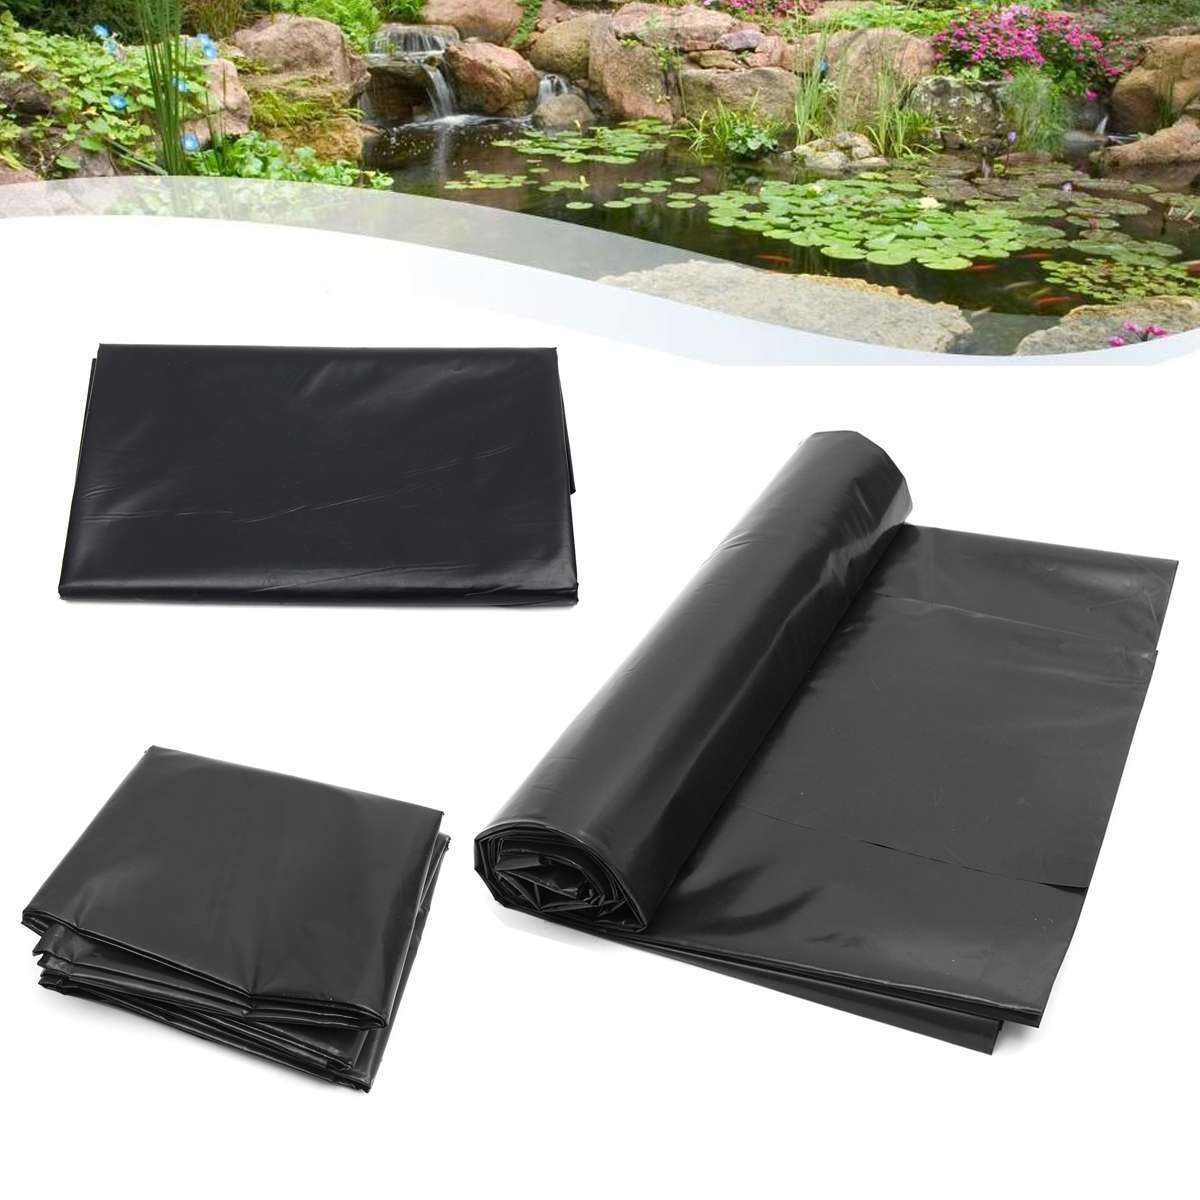 Pond-Liner Liner-Membrane HDPE Garden-Pool Waterproof Cloth Reinforced Landscaping Fish-Breed